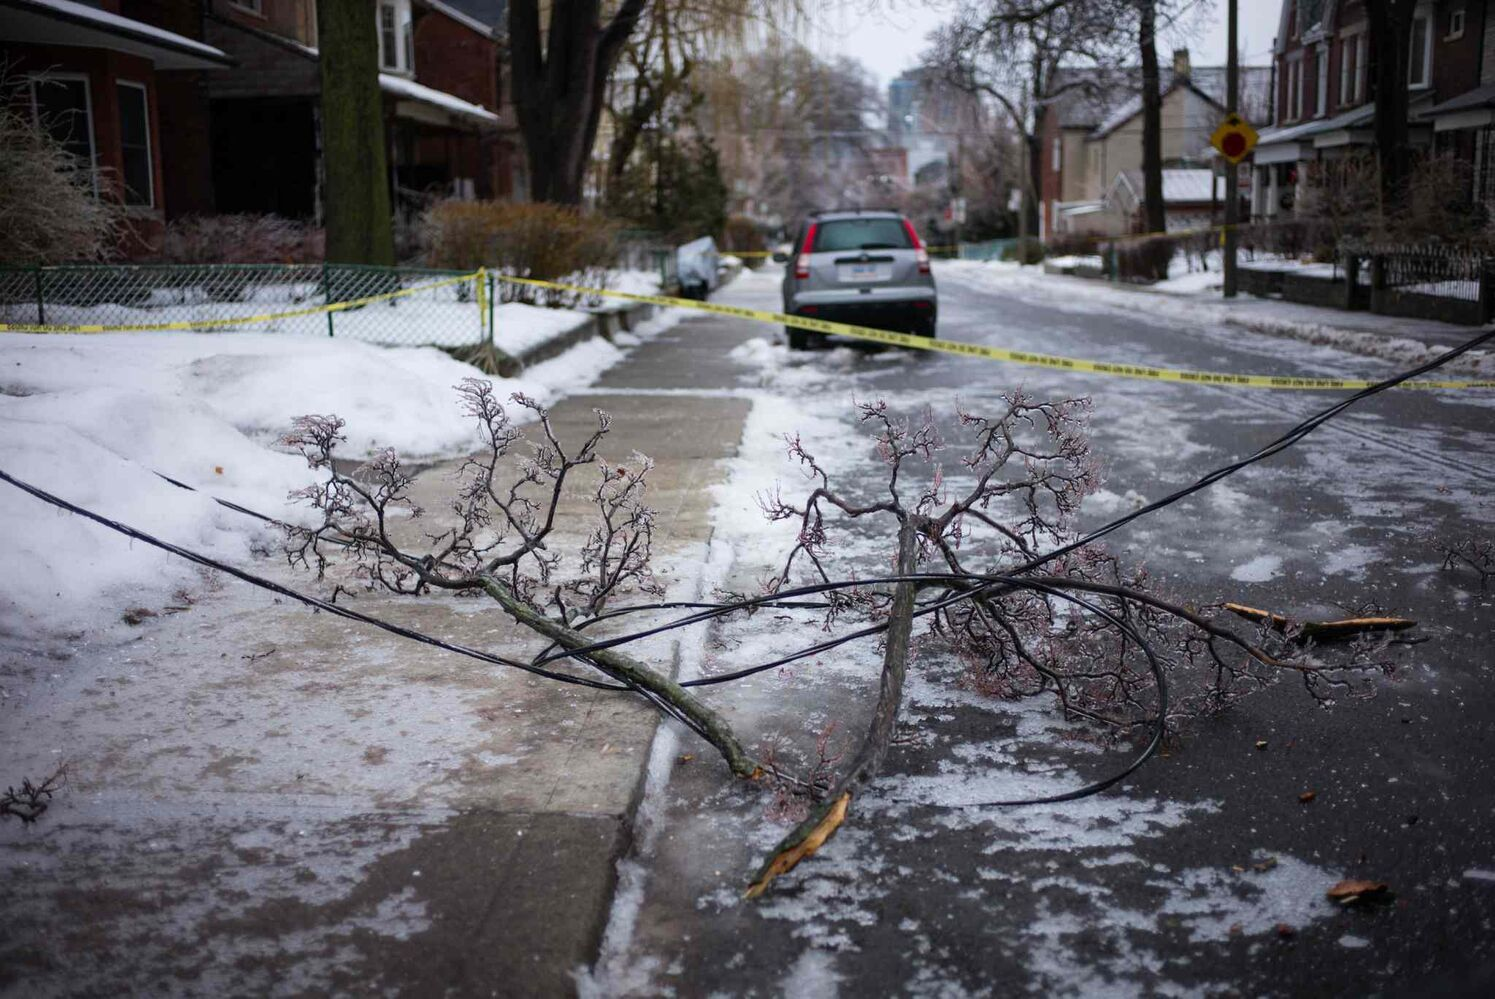 A downed power line is tangled up with a fallen branch near Toronto's Trinity Bellwoods Park Sunday. (Ian Willms / The Canadian Press)